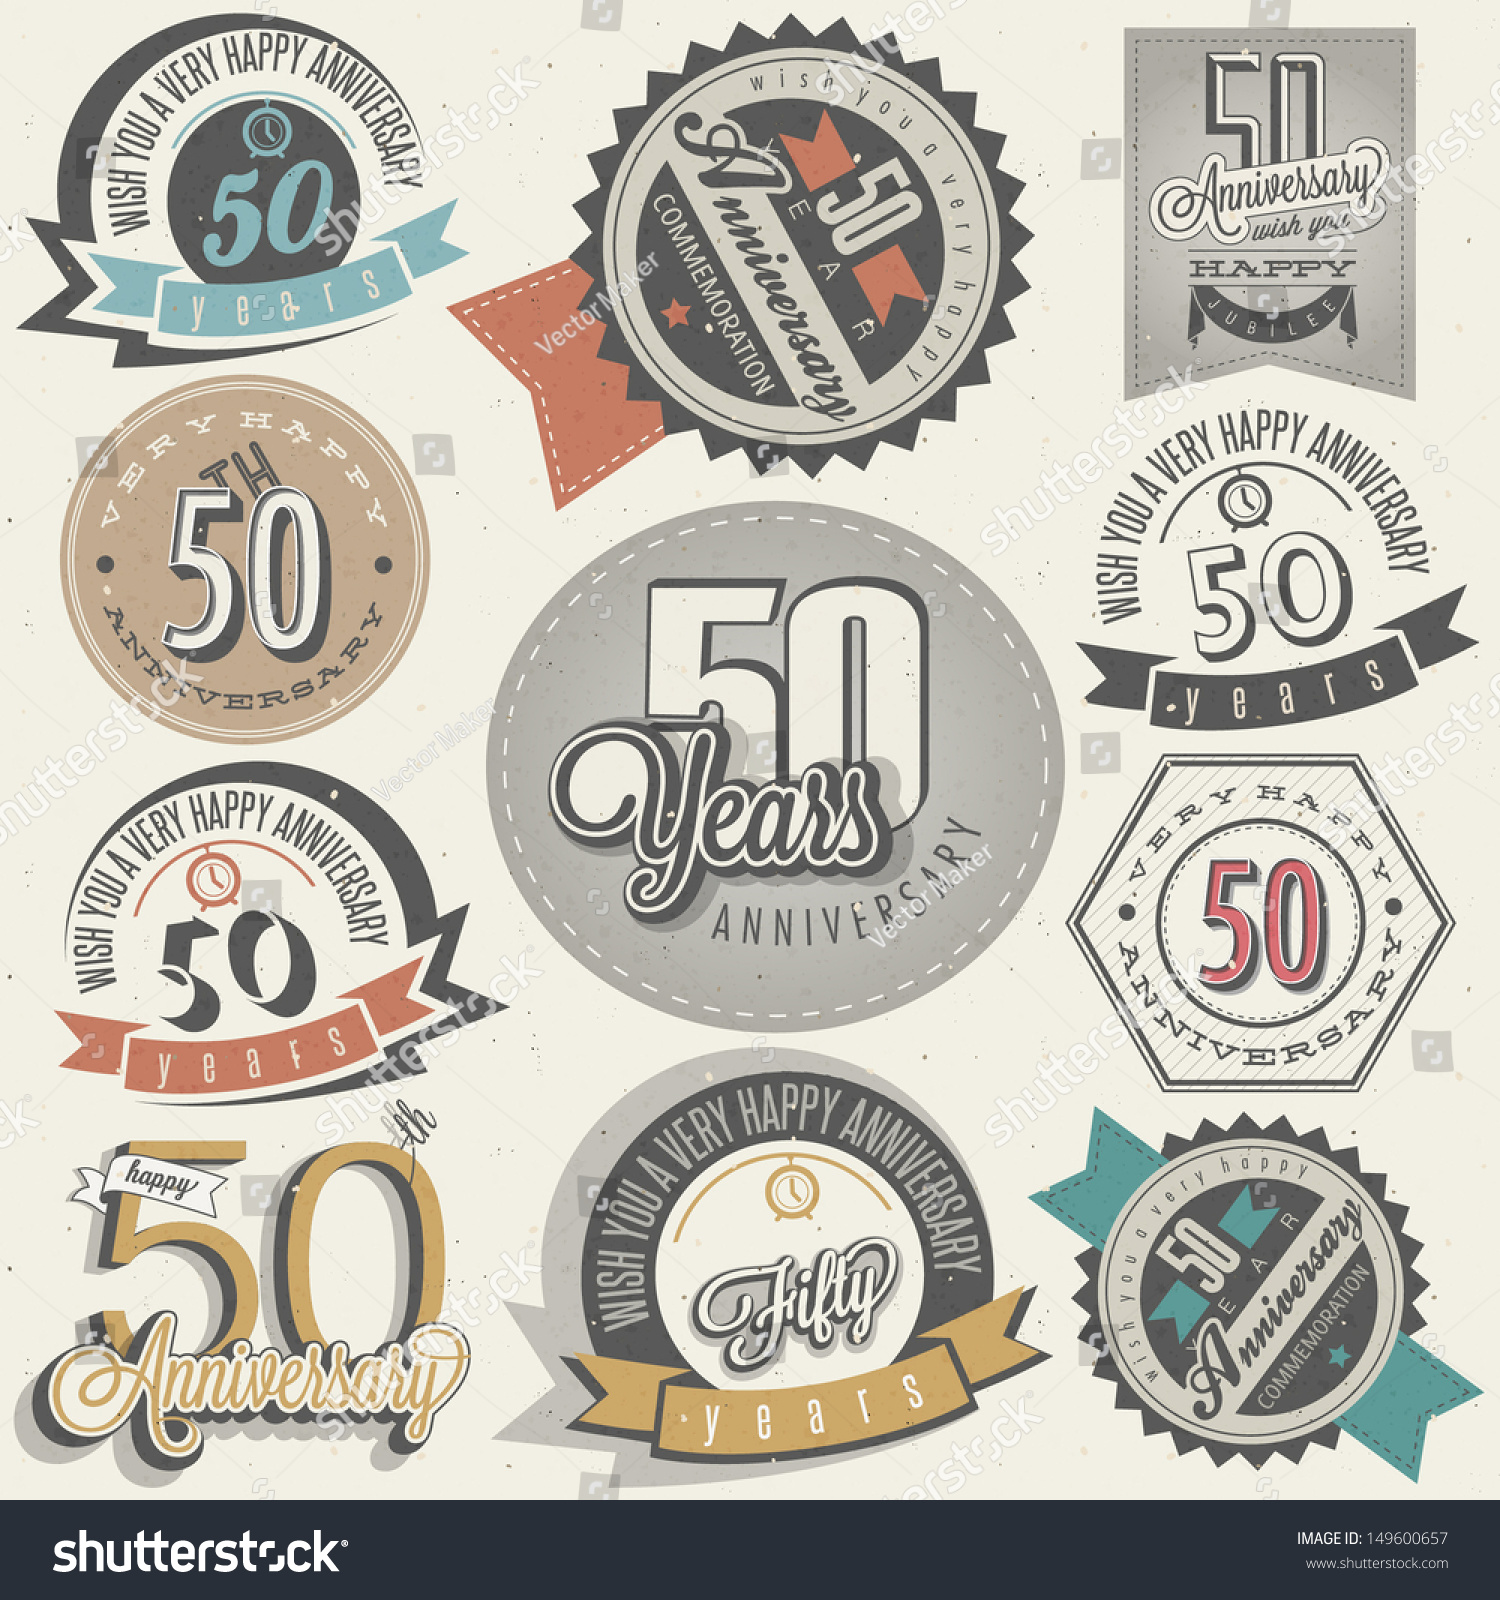 Vintage Style 50 Anniversary Collection Fifty Stock Vector 149600657 Shutterstock